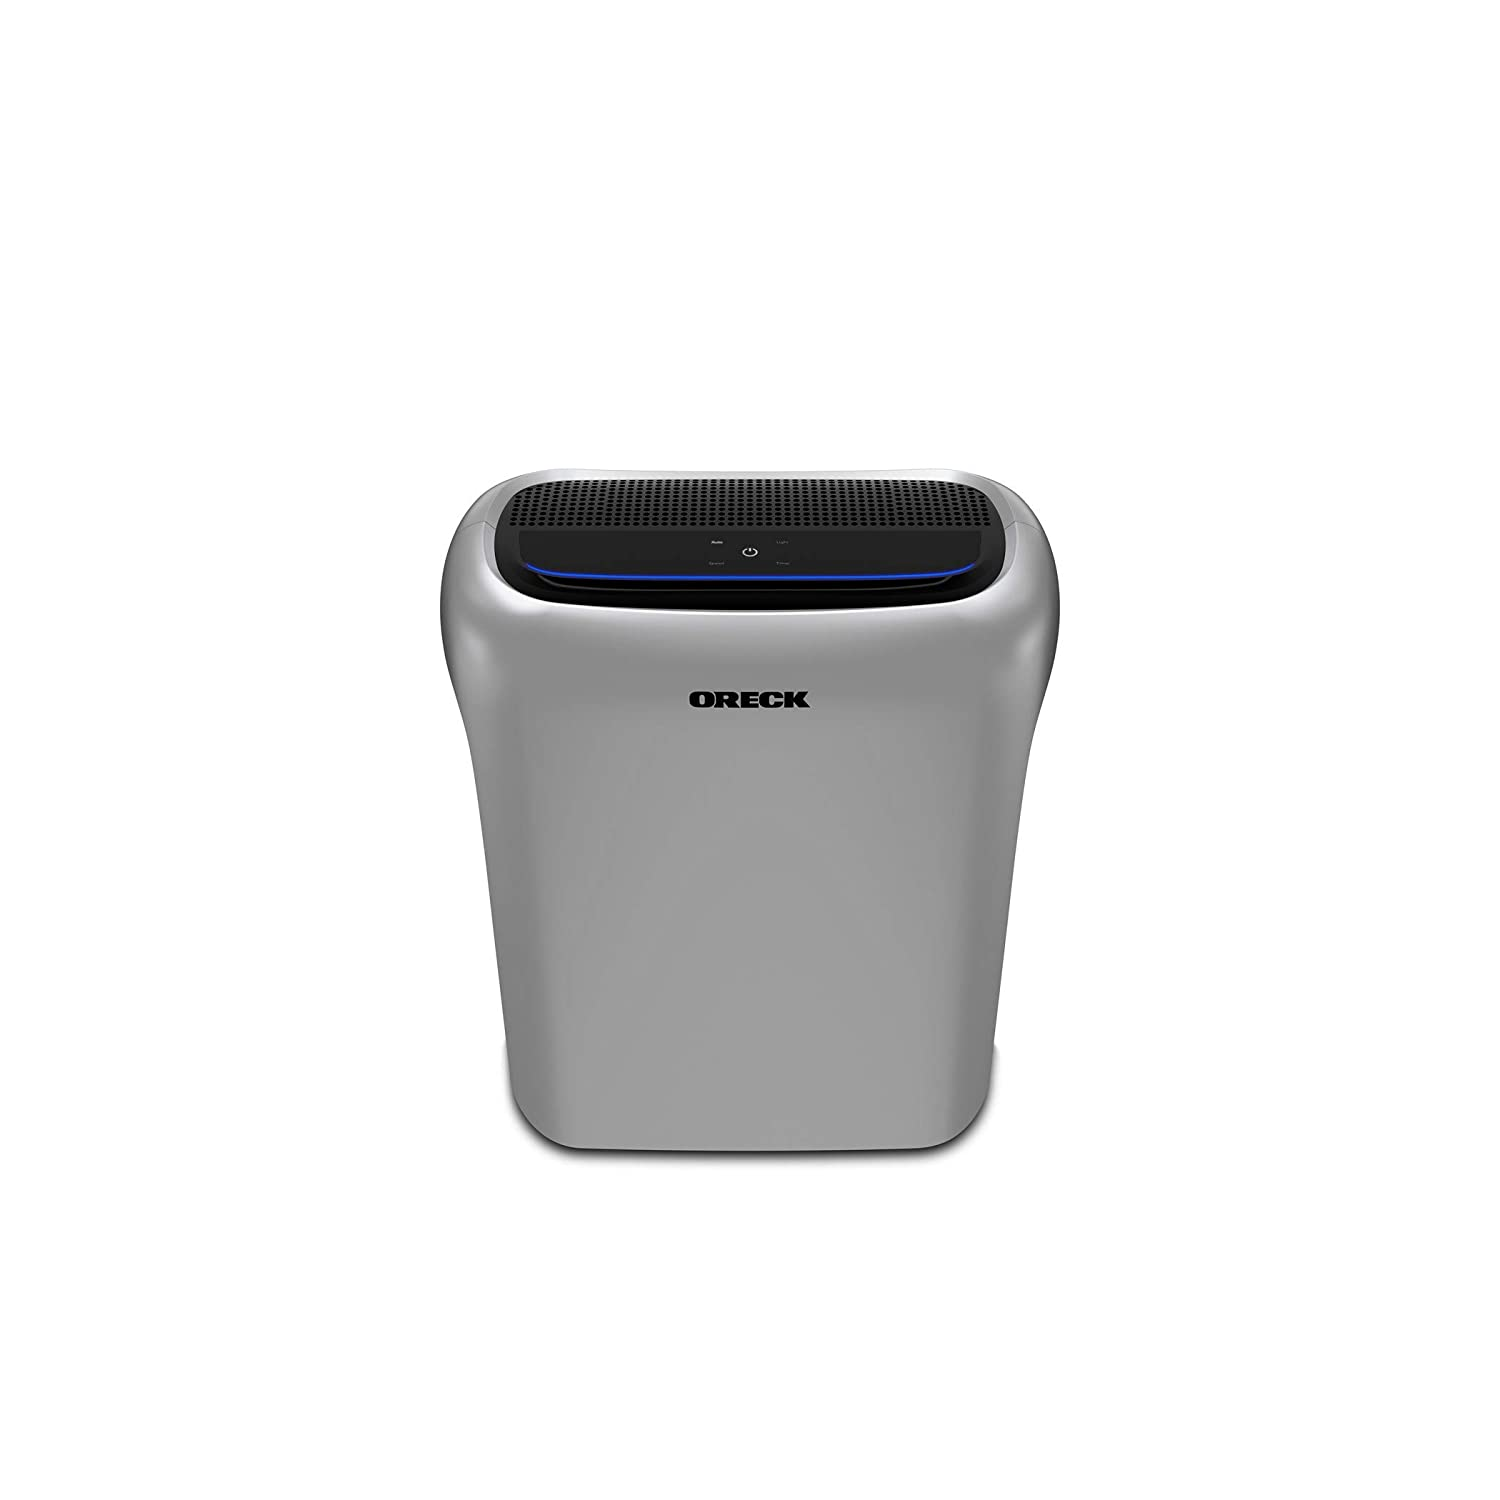 Oreck Air Response Air Purifier - Large, WK16002